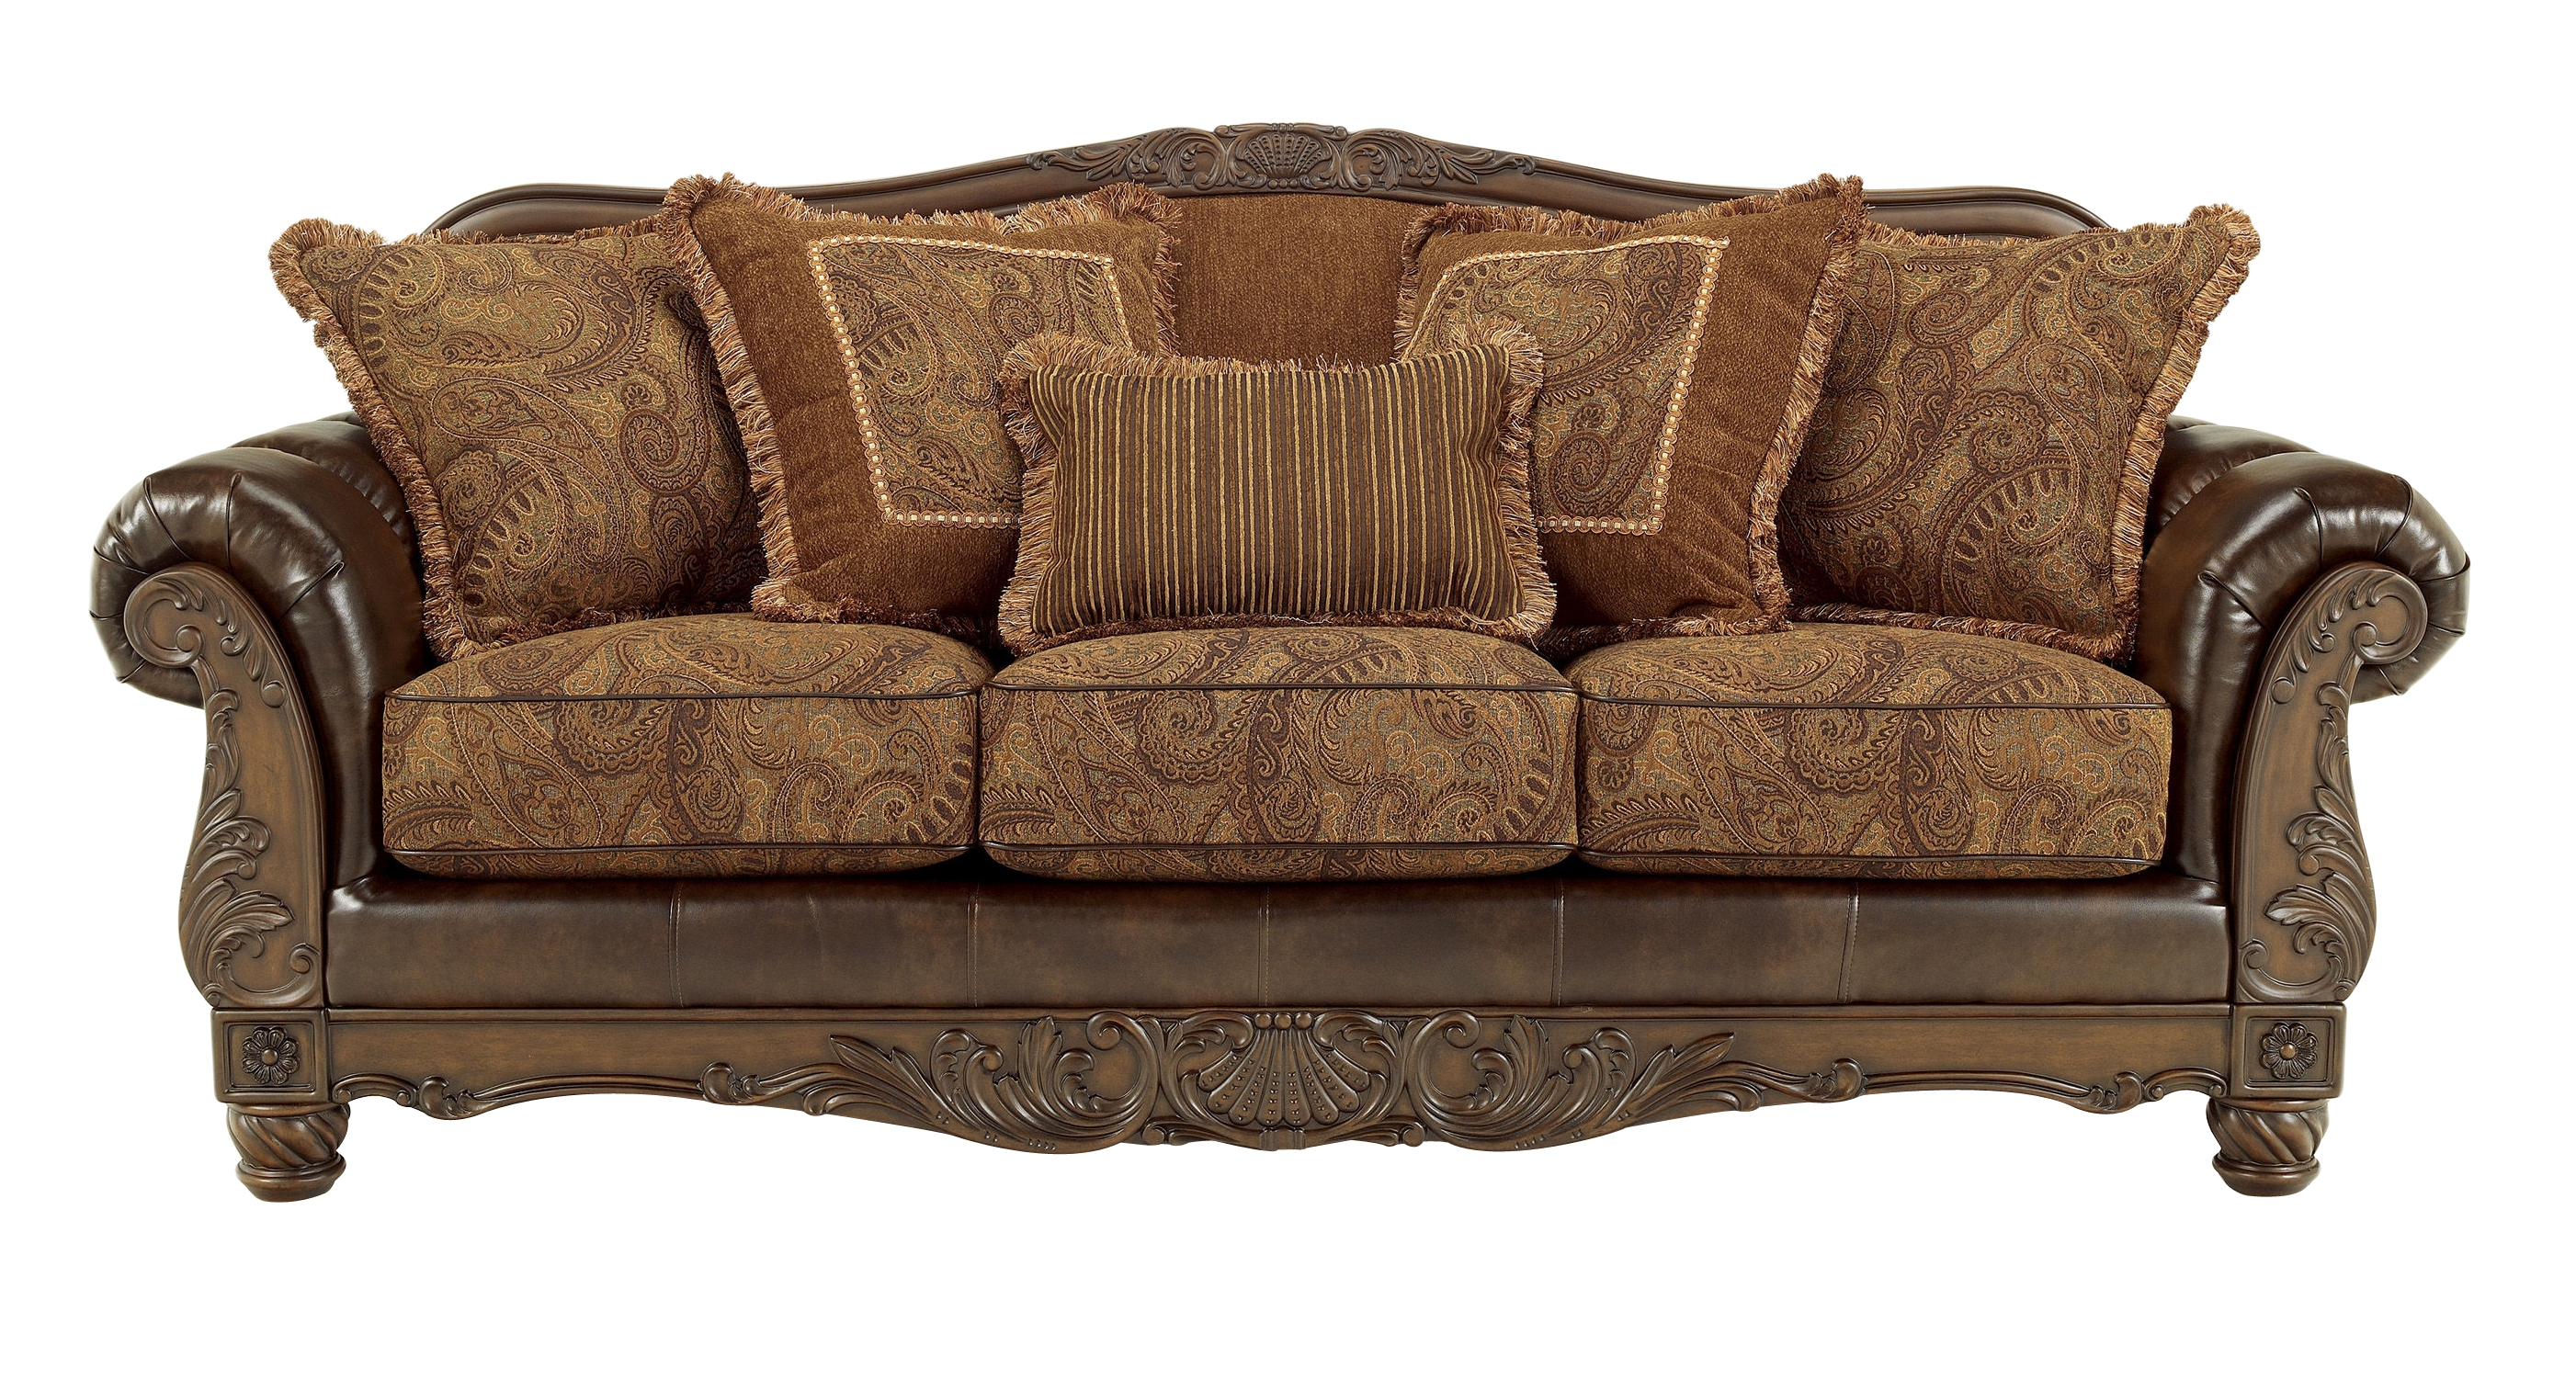 Ashley Furniture Fresco Durablend Antique Sofa The Classy Home